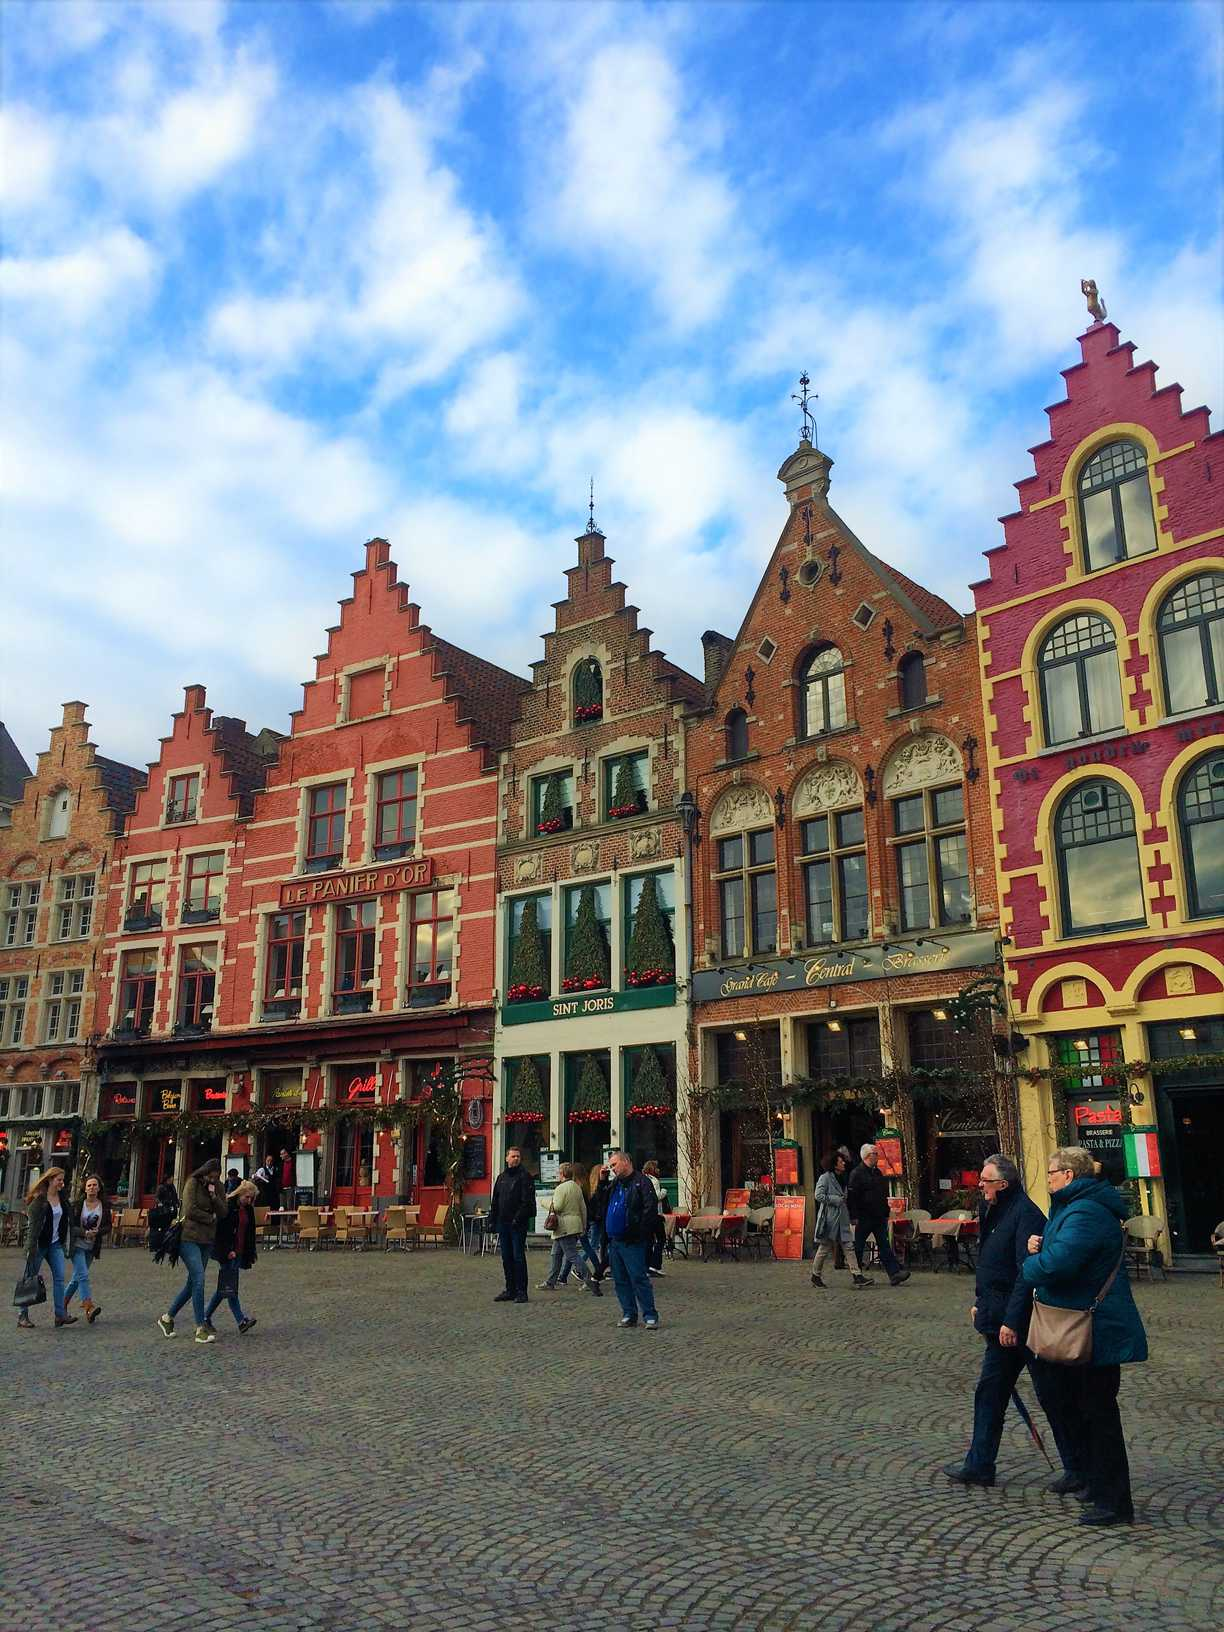 The colorful gabled buildings of Markt in Bruges, Belgium.